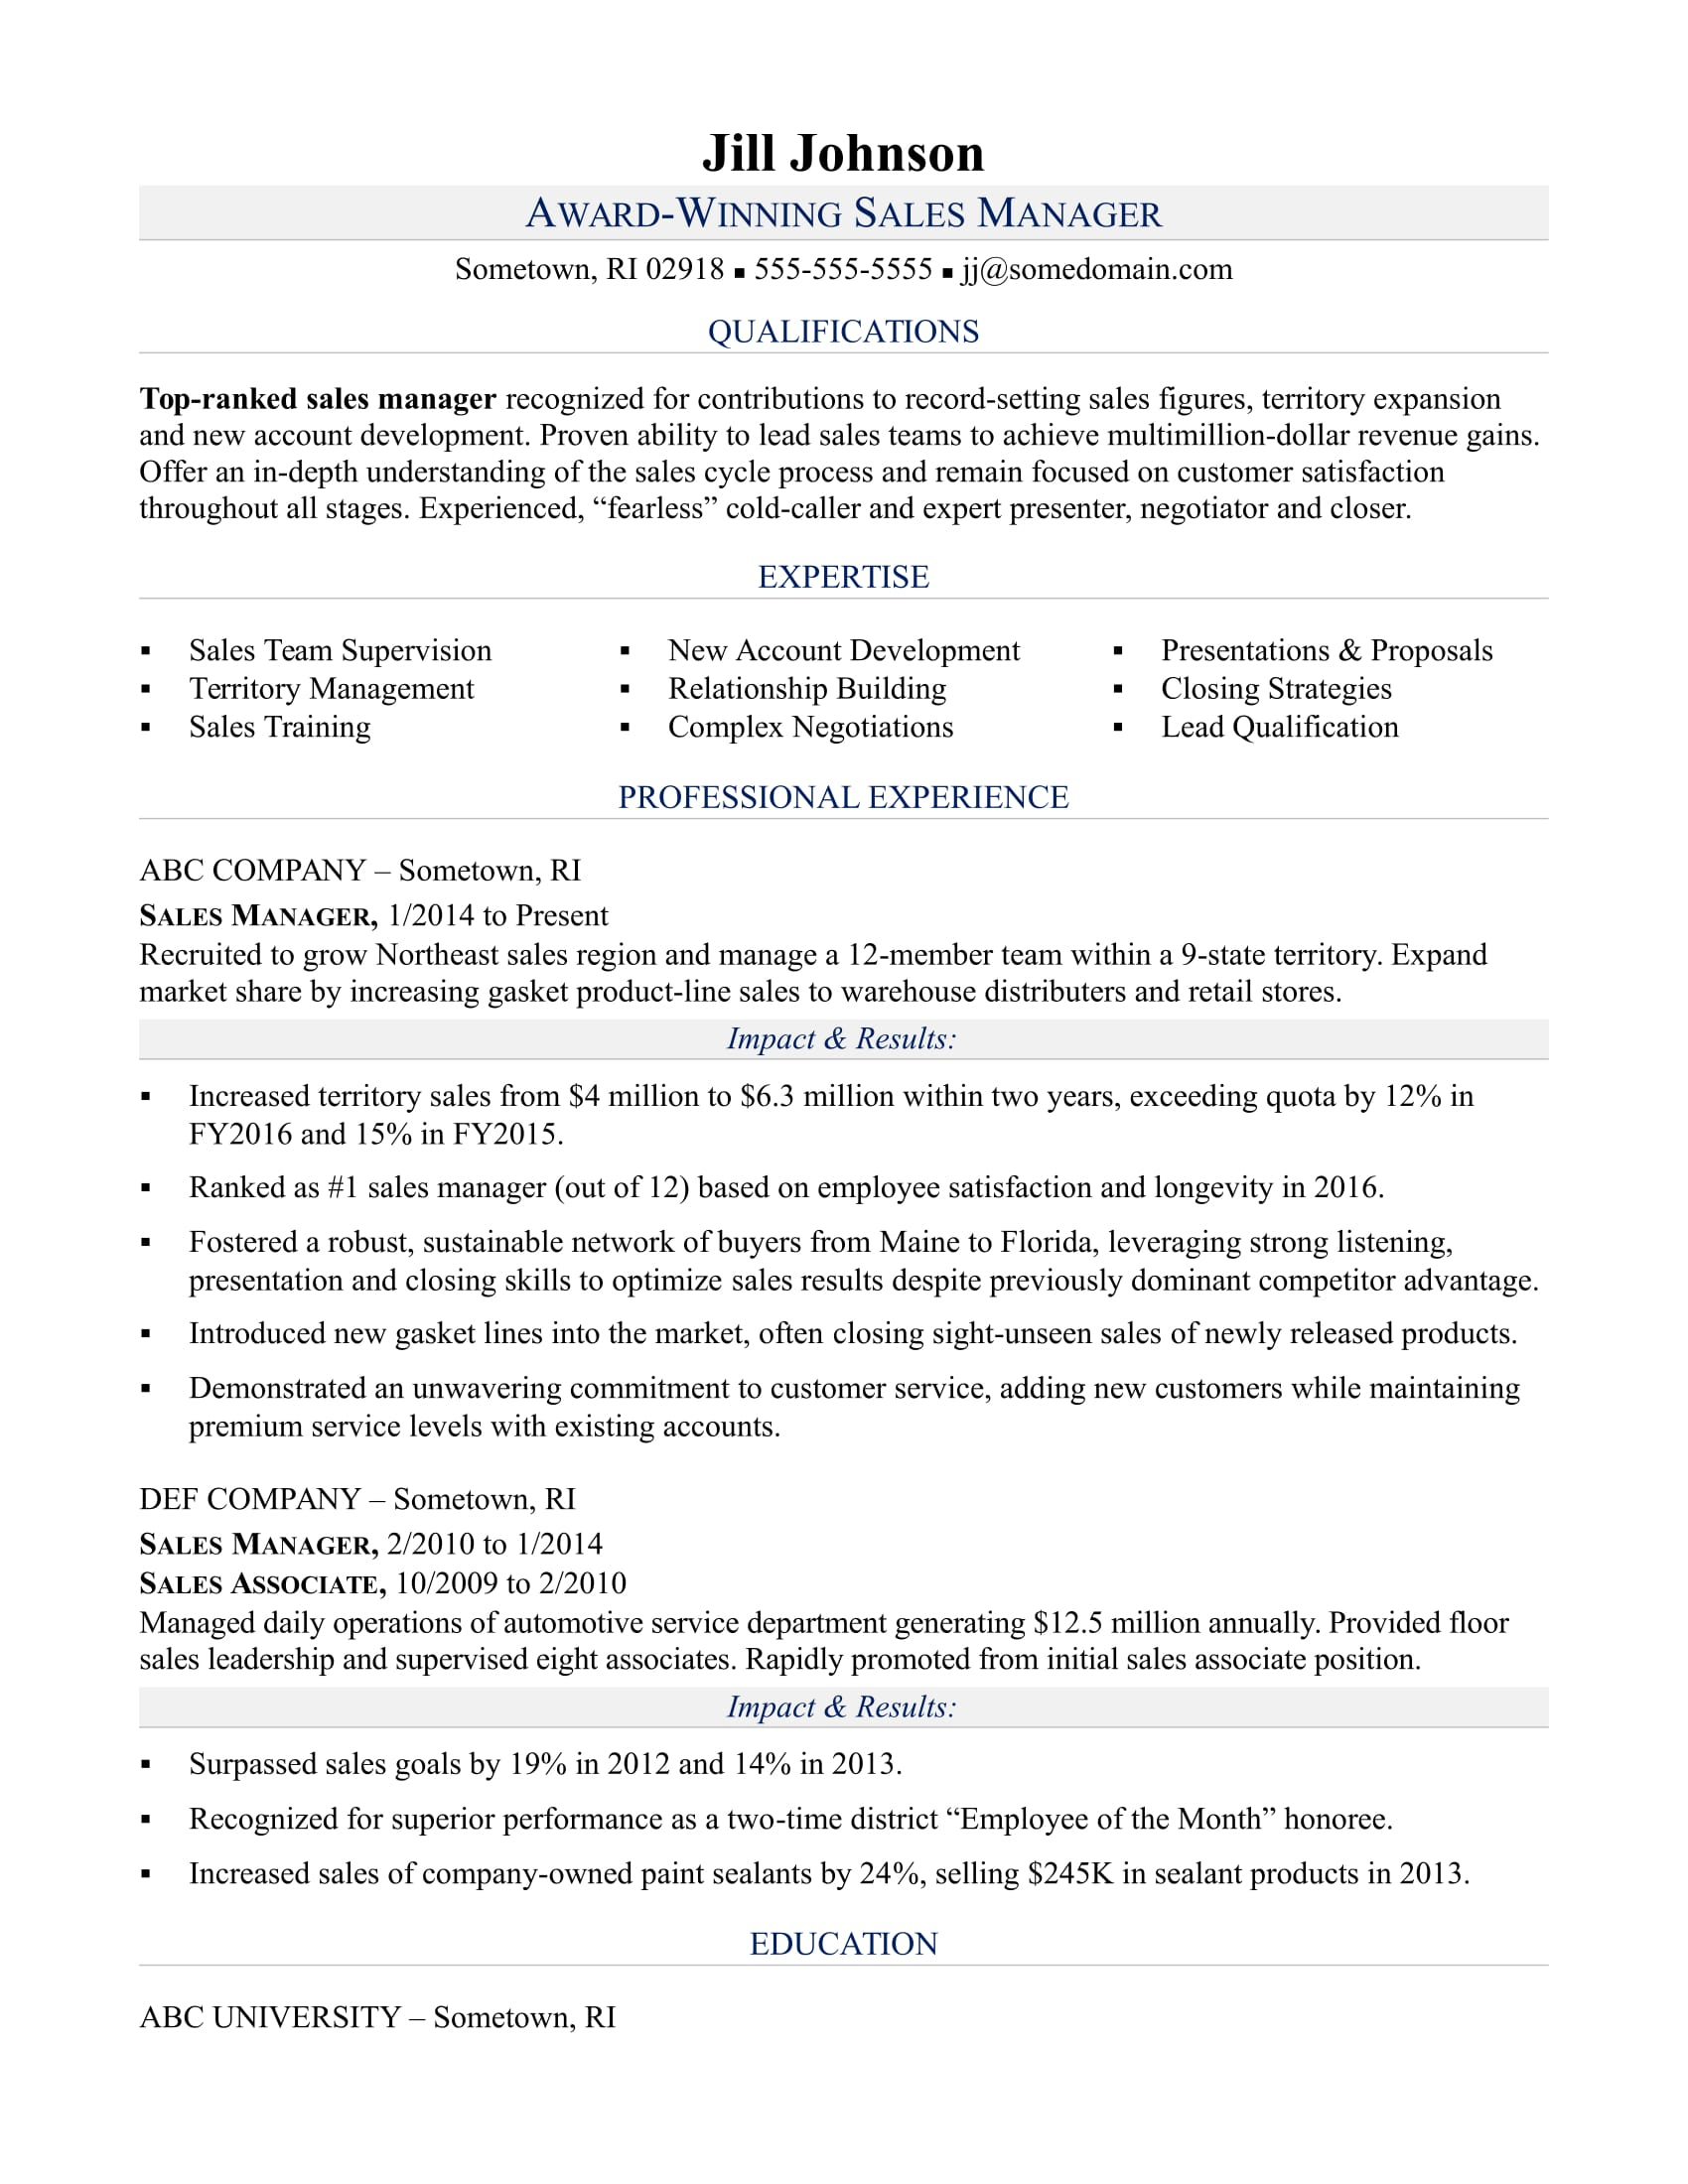 sample resume for a sales manager - Resume Experience Sample